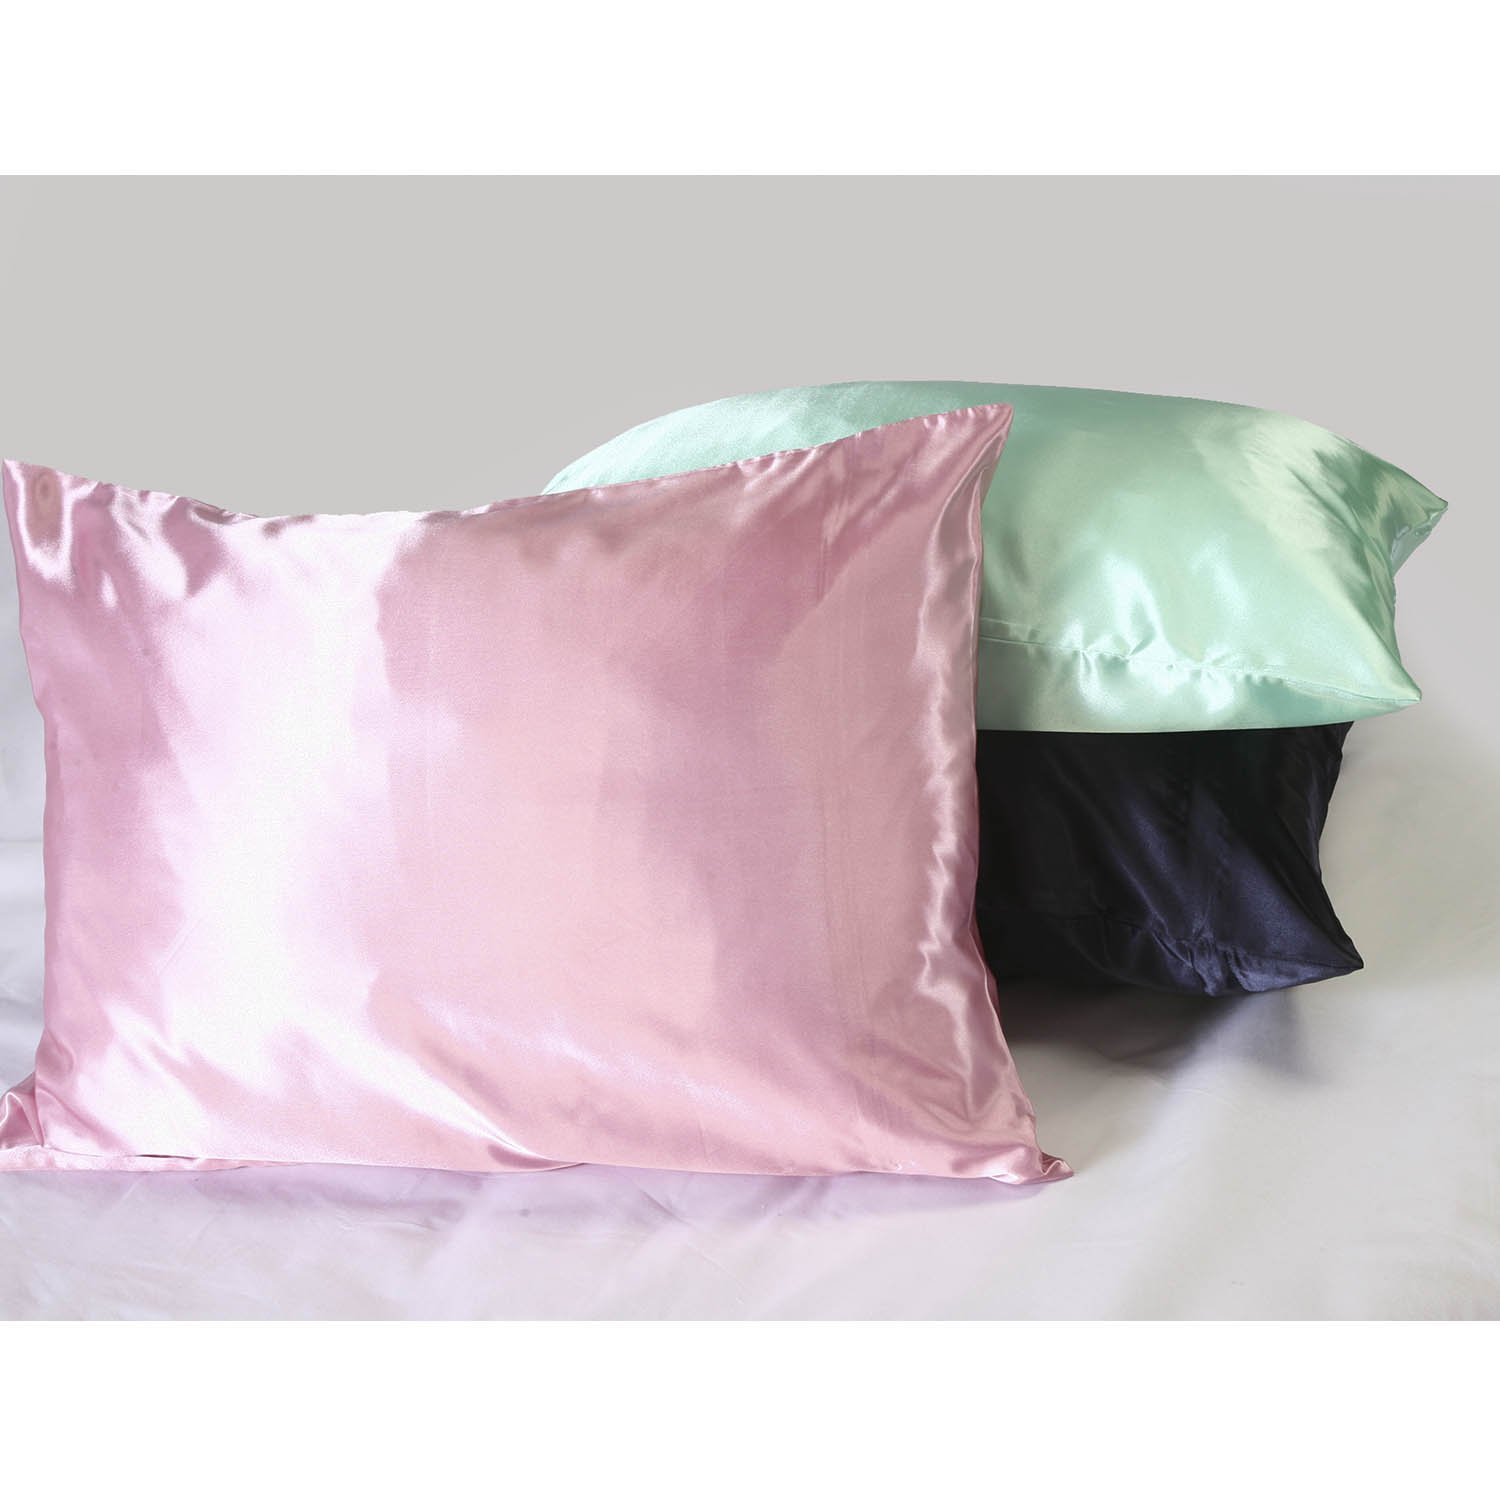 Sweet Dreams Luxury Satin Pillowcase with hidden zipper